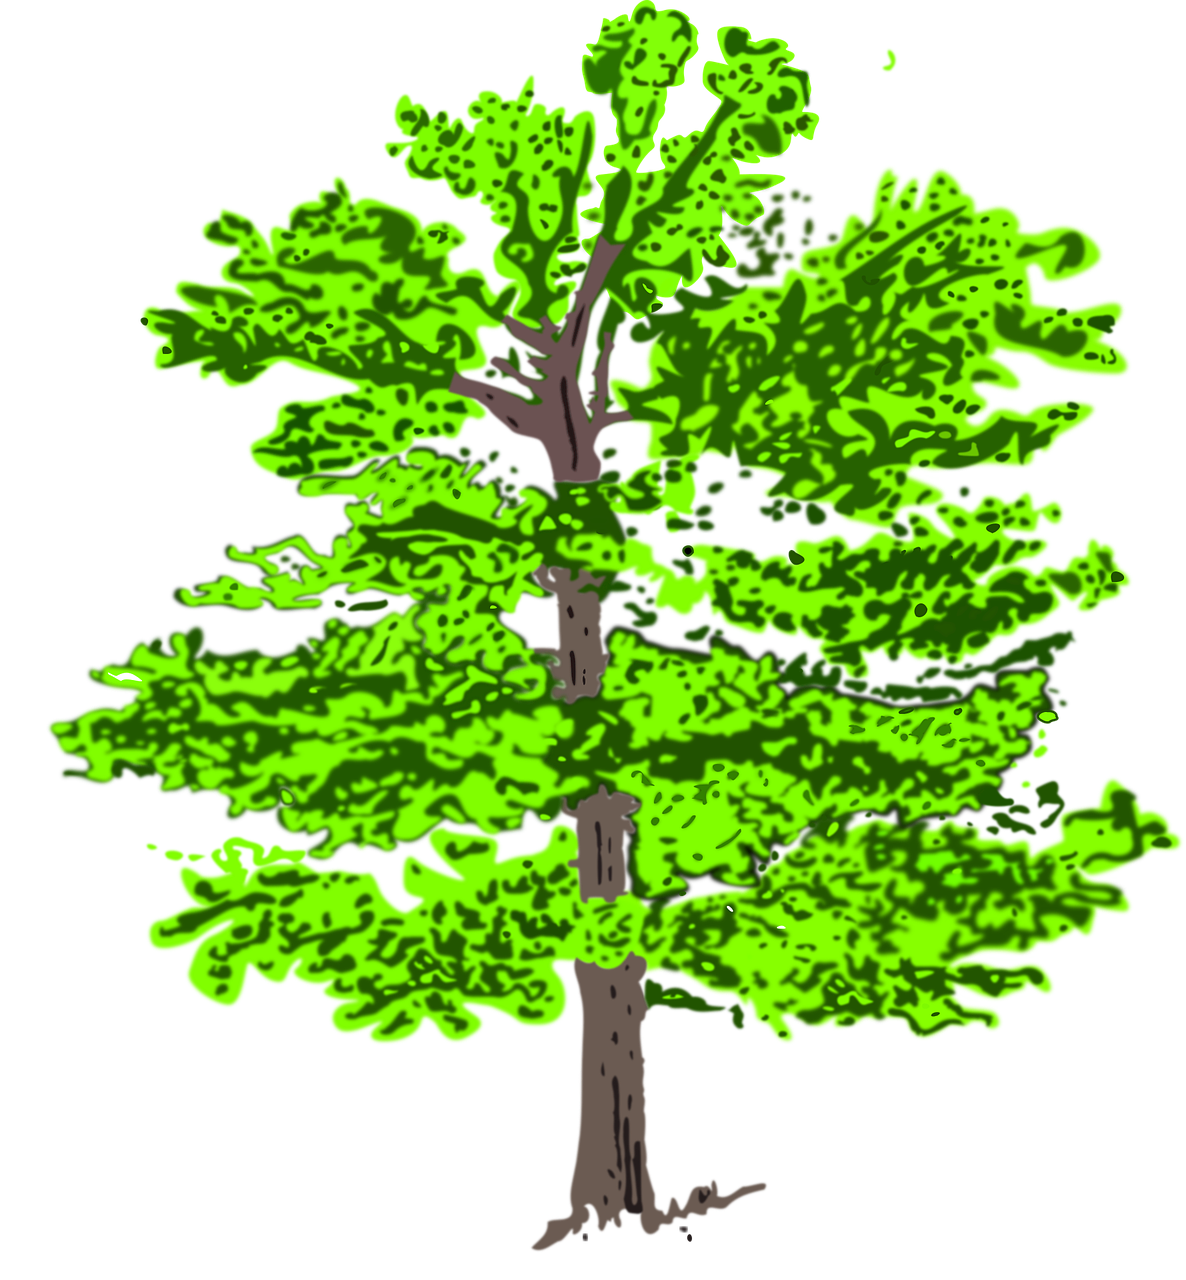 Growth clipart tree plantation. Green plant nature leaf